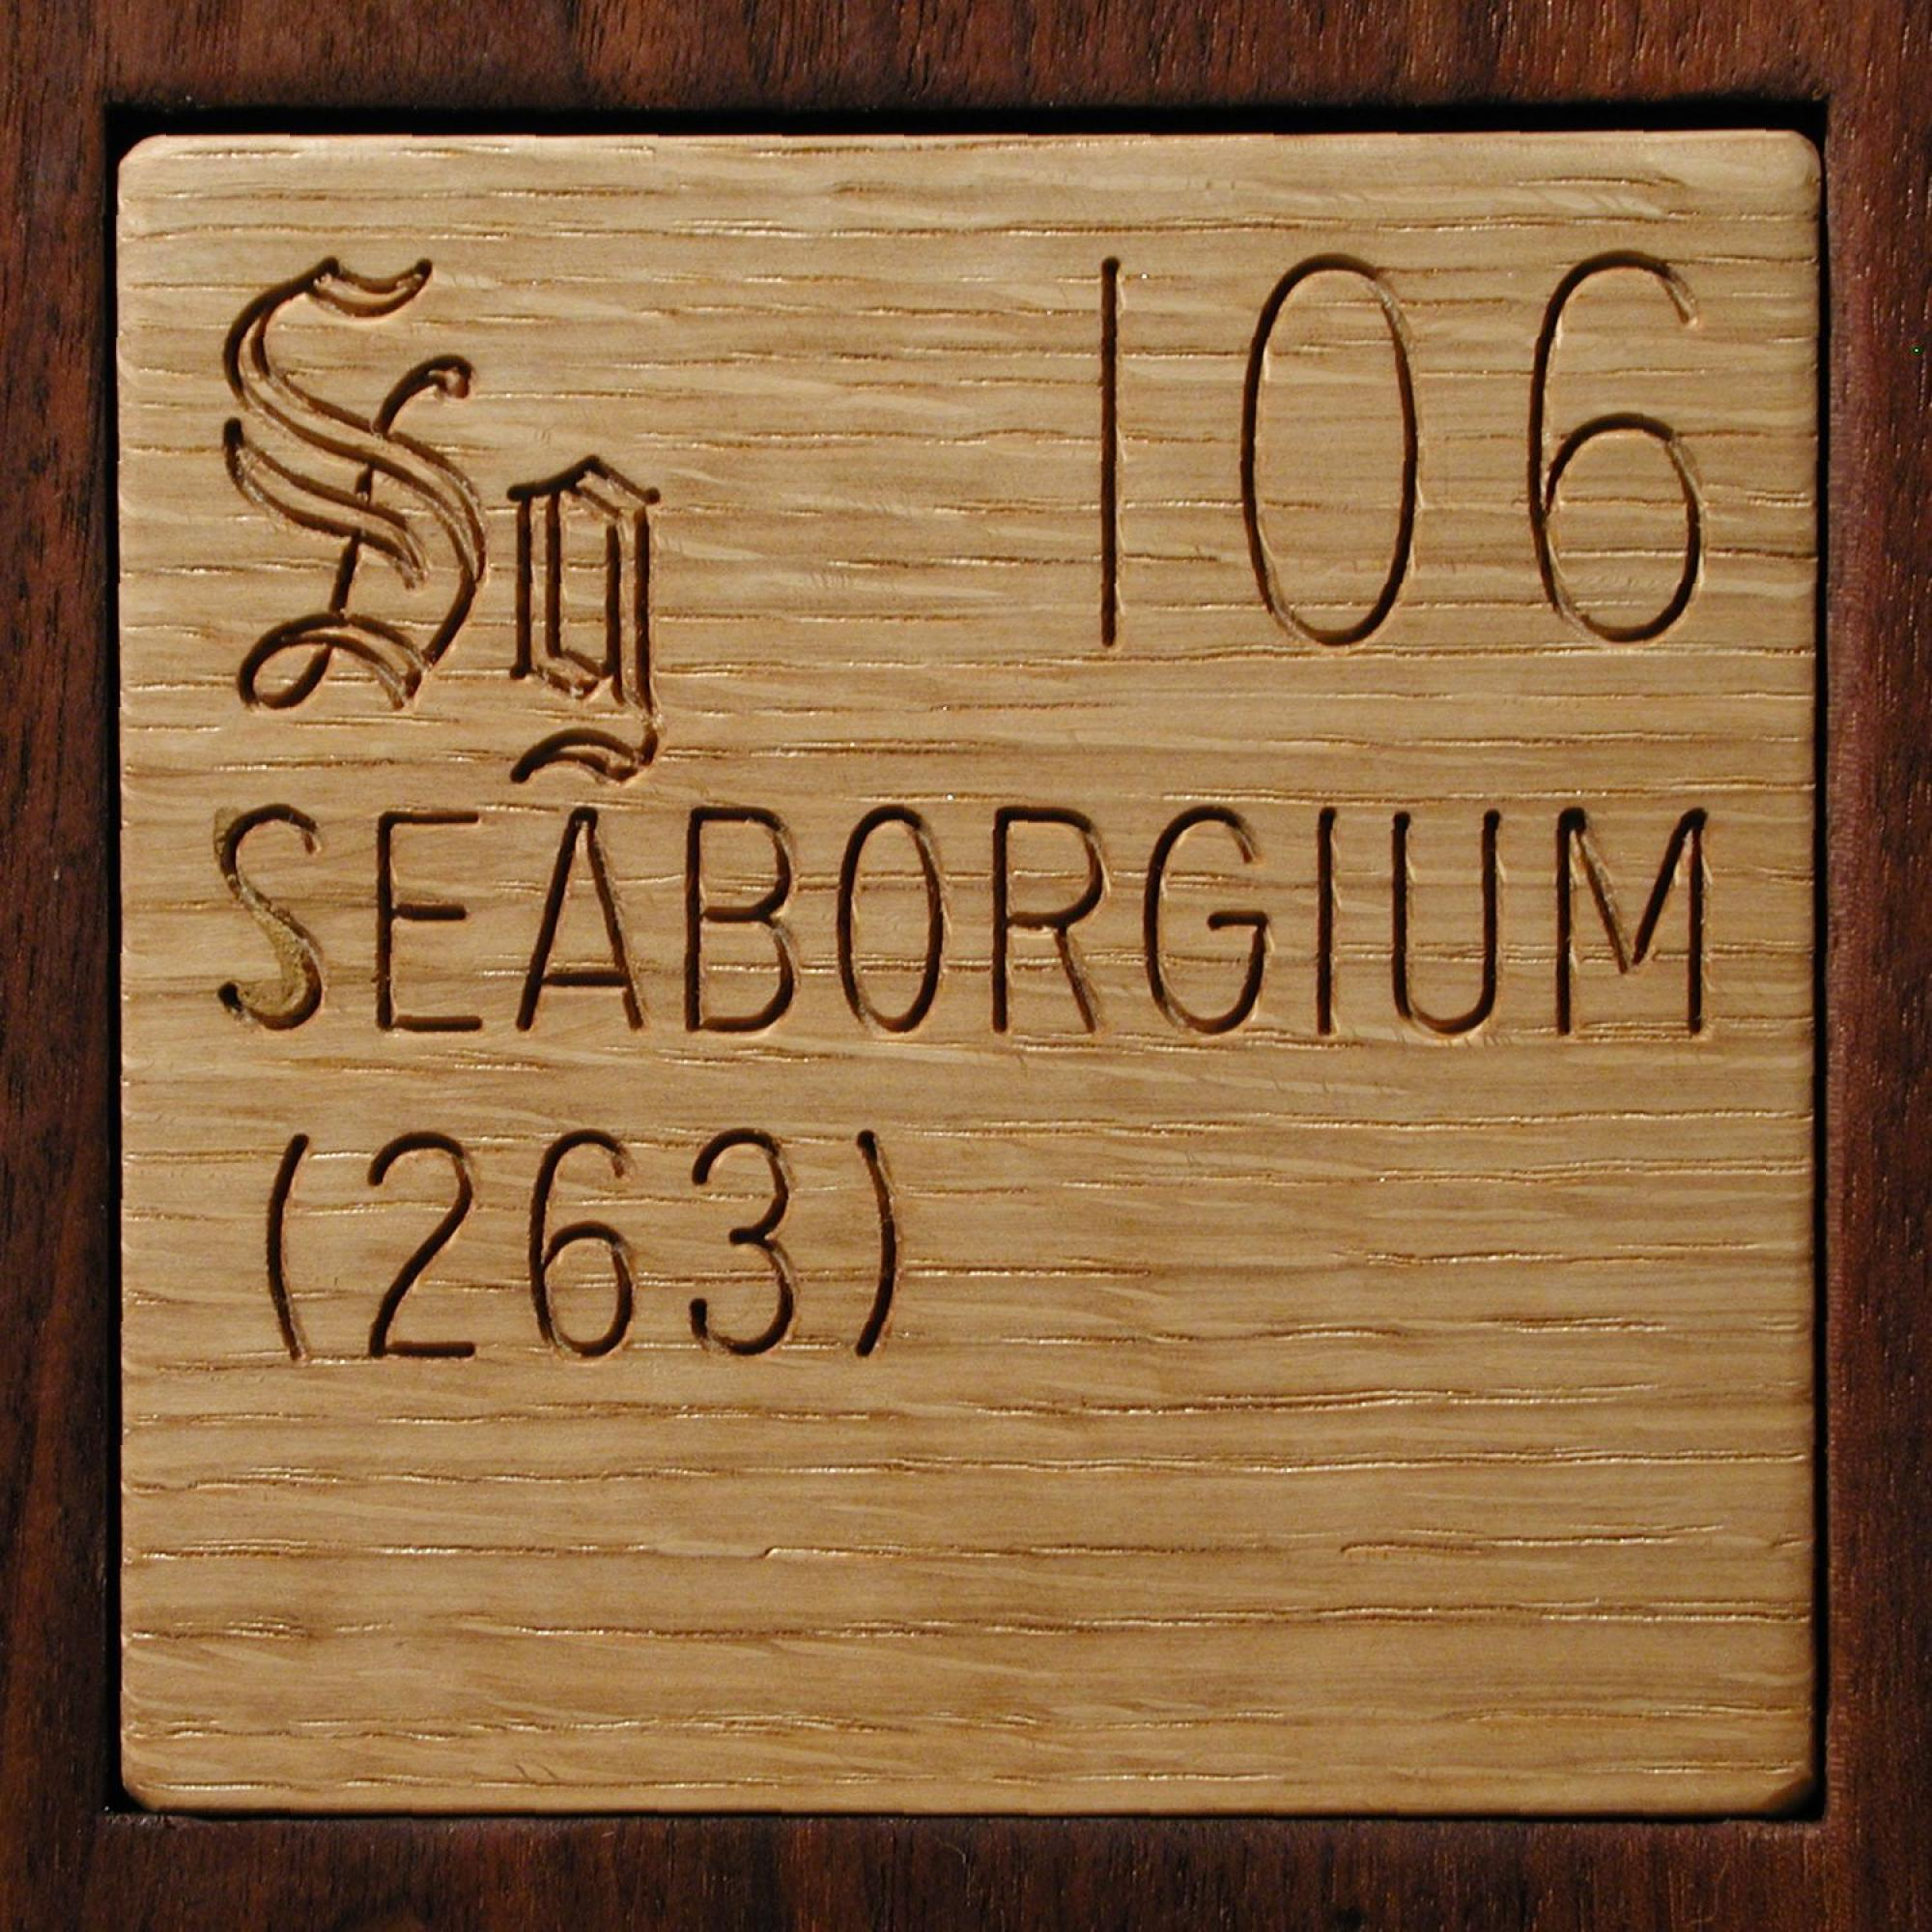 Facts pictures stories about the element seaborgium in the facts pictures stories about the element seaborgium in the periodic table urtaz Gallery